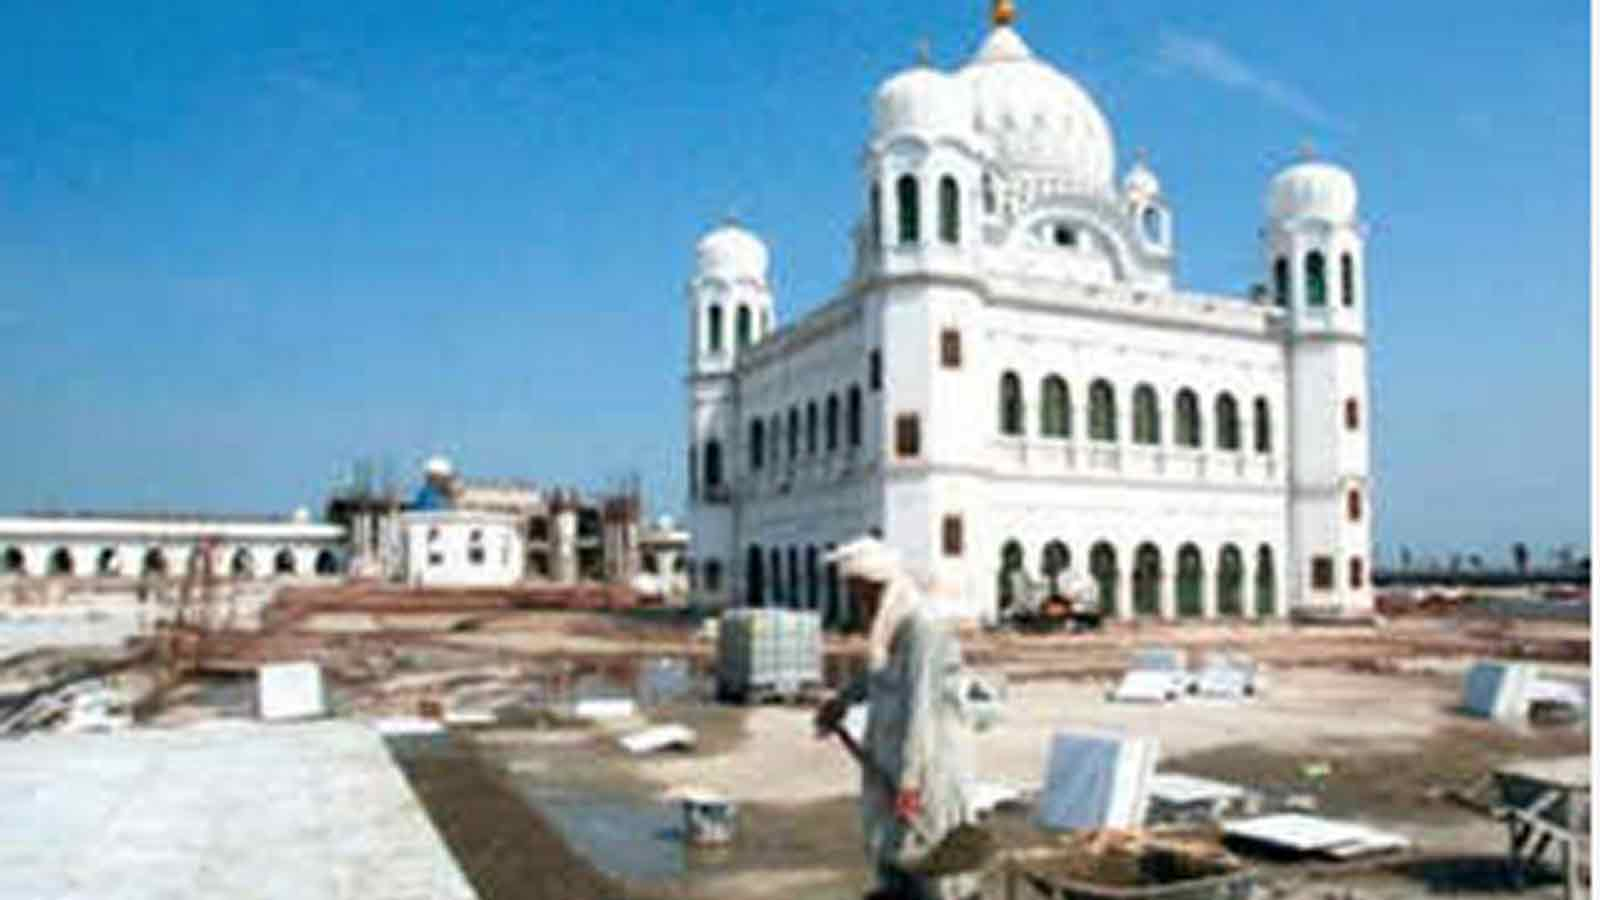 pakistans-kartarpur-sham-exposed-khalistan-2020-posters-emerge